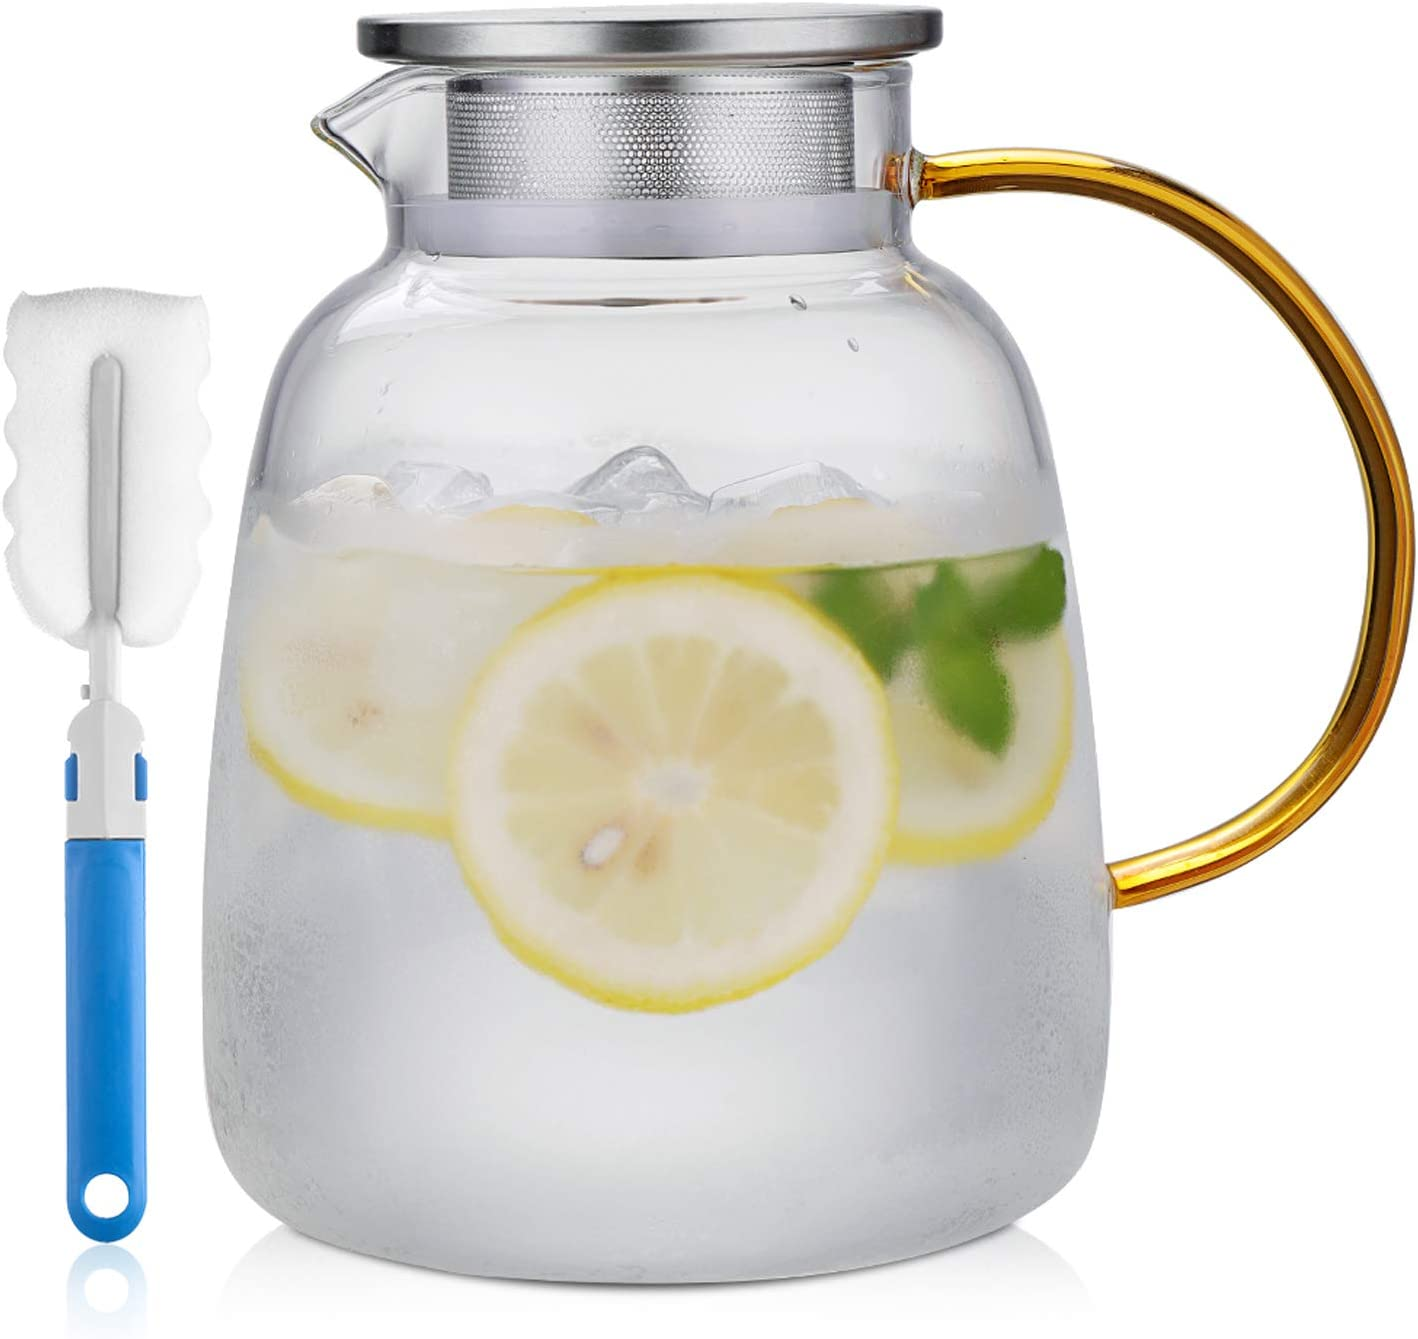 Glass Pitcher with Stainless Steel Lid - 68 Ounces Water Carafe with Handle - Good Beverage Pitcher for Homemade Juice & Iced Tea (Gold)